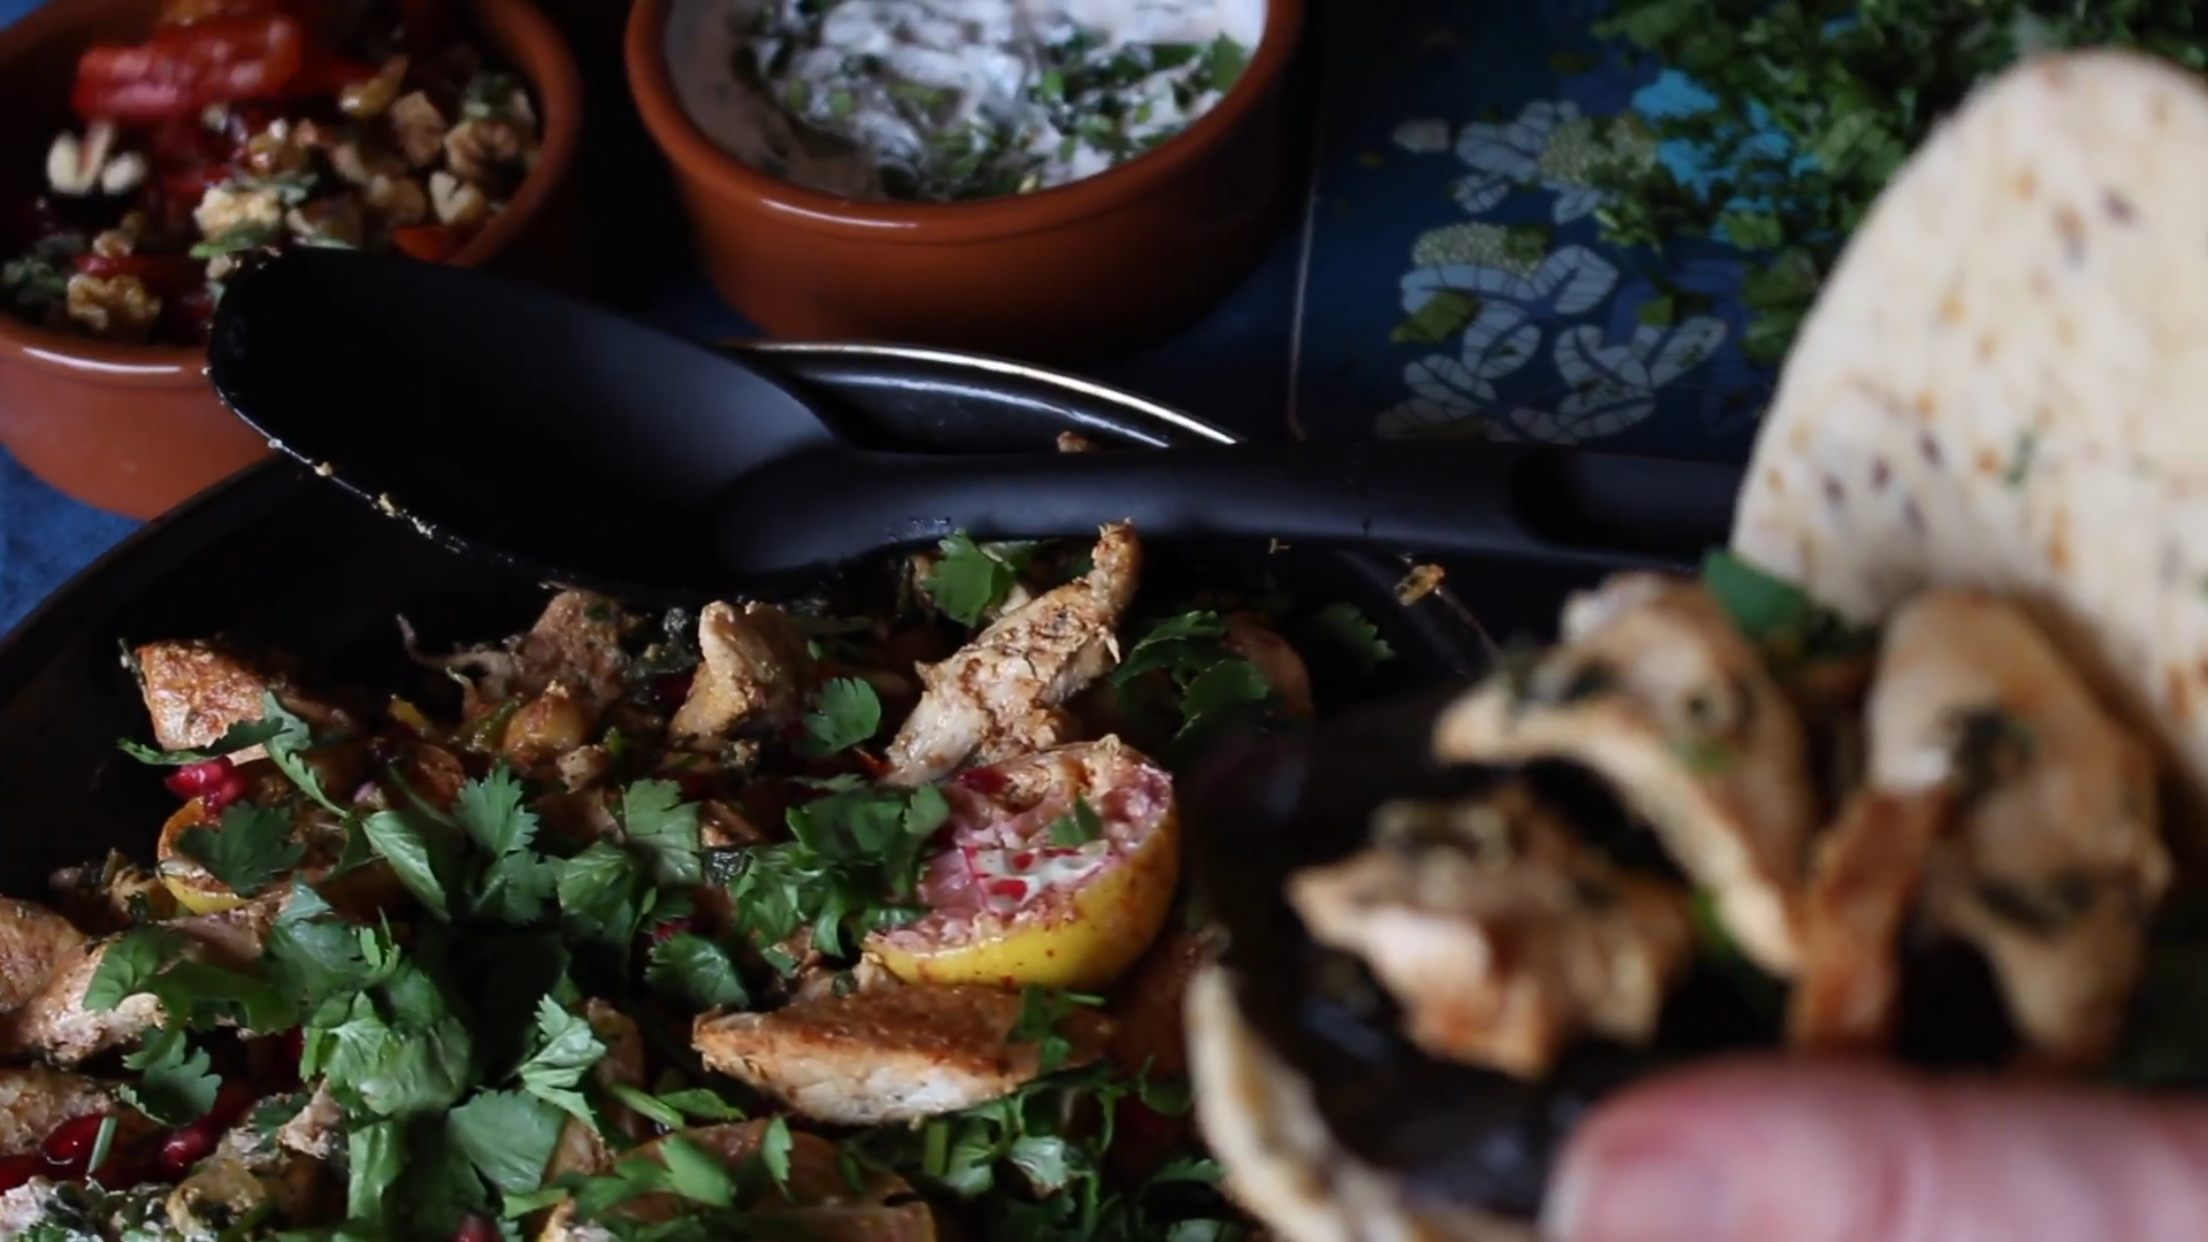 Moroccan Chicken Flatbreads cooked on the beach. Perfect party food with delicious toppings of Roasted Red Pepper Salad and a Citrus Garlic Yoghurt Dip